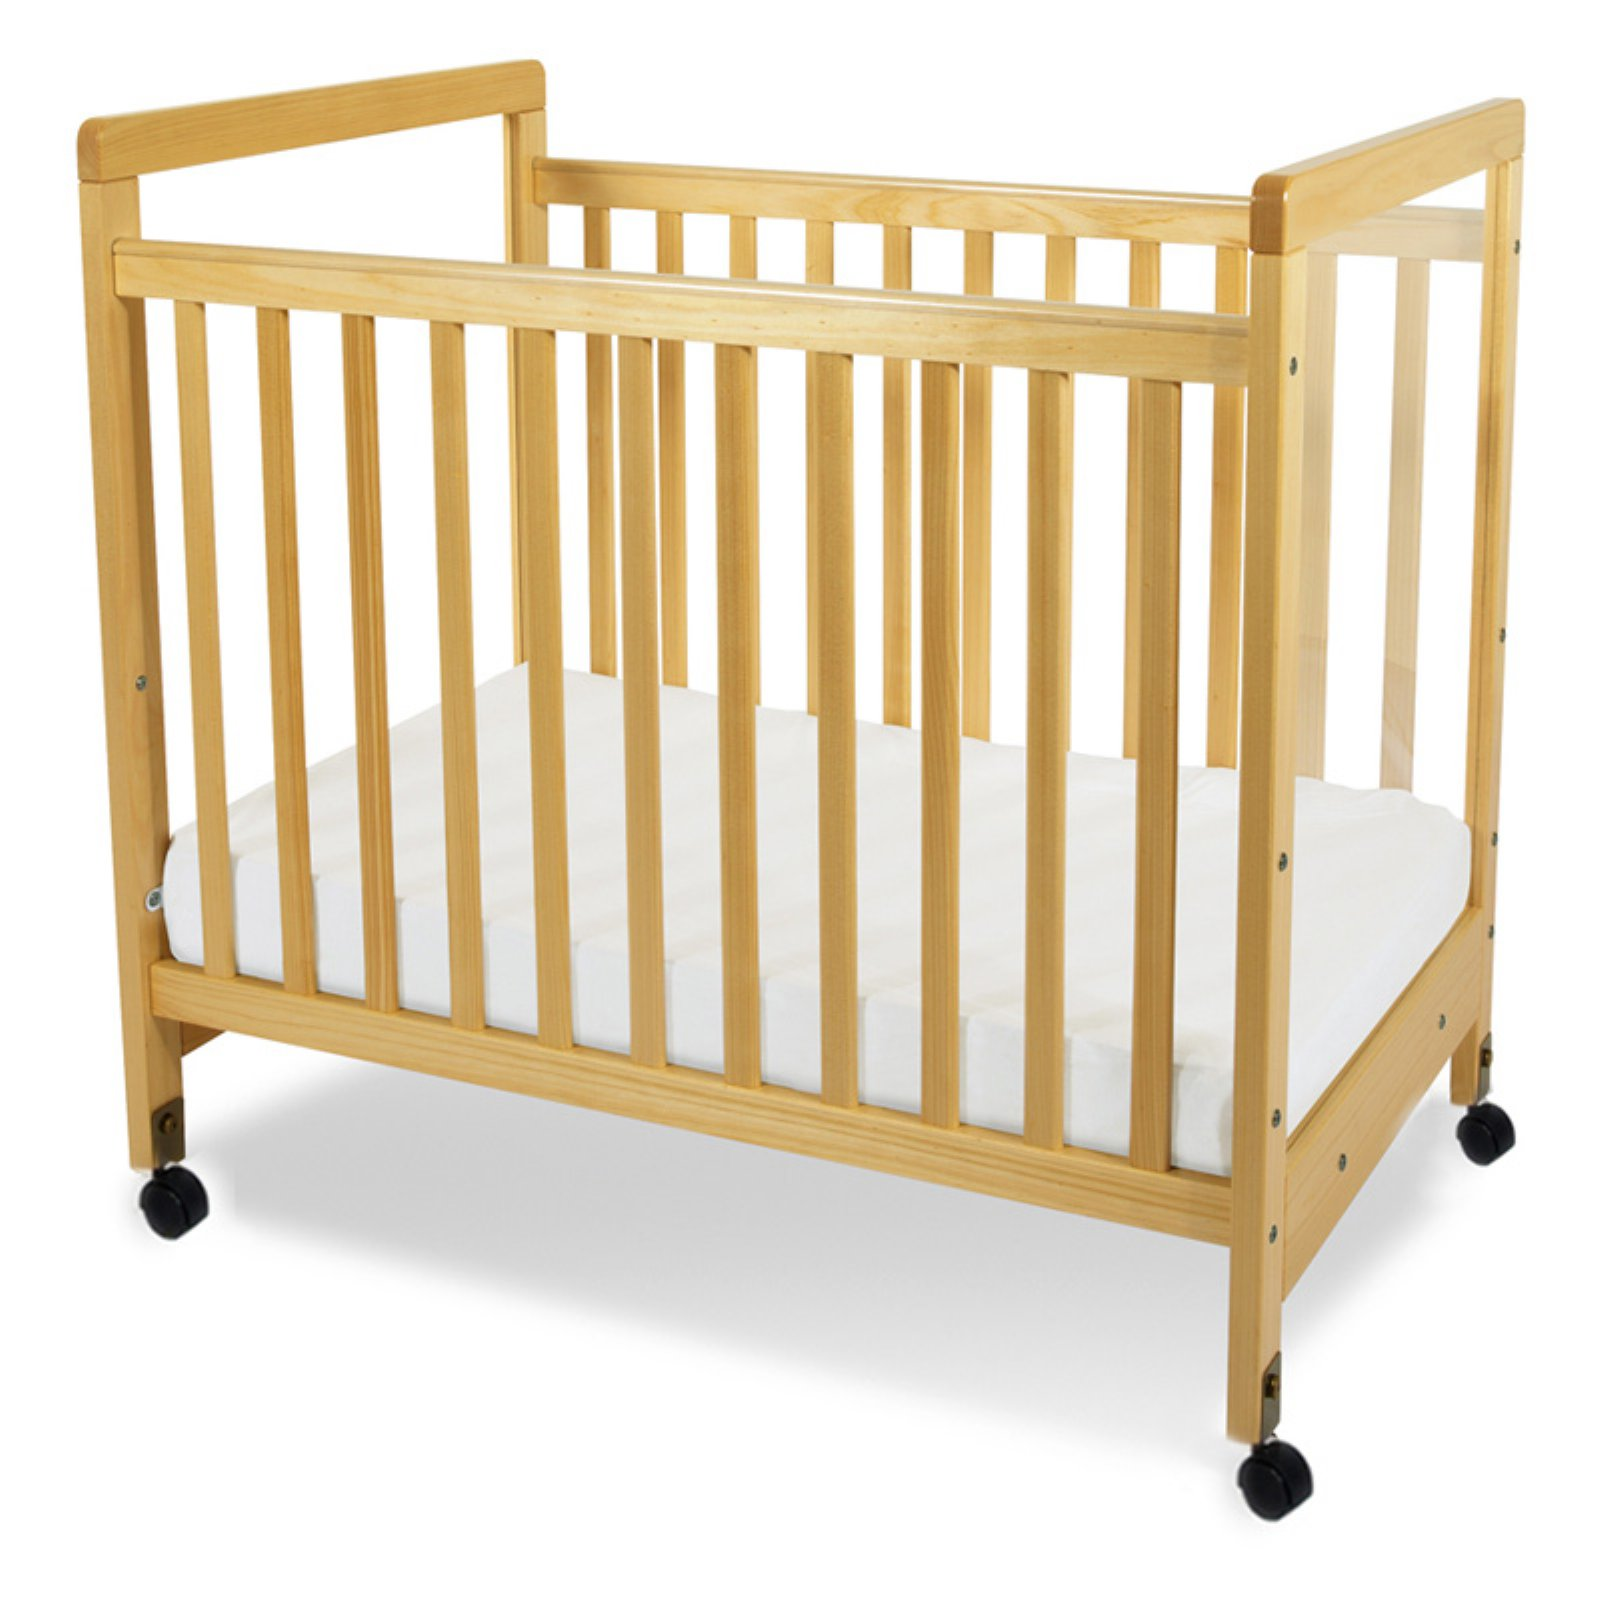 Foundations SafetyCraft Clearview Compact Crib